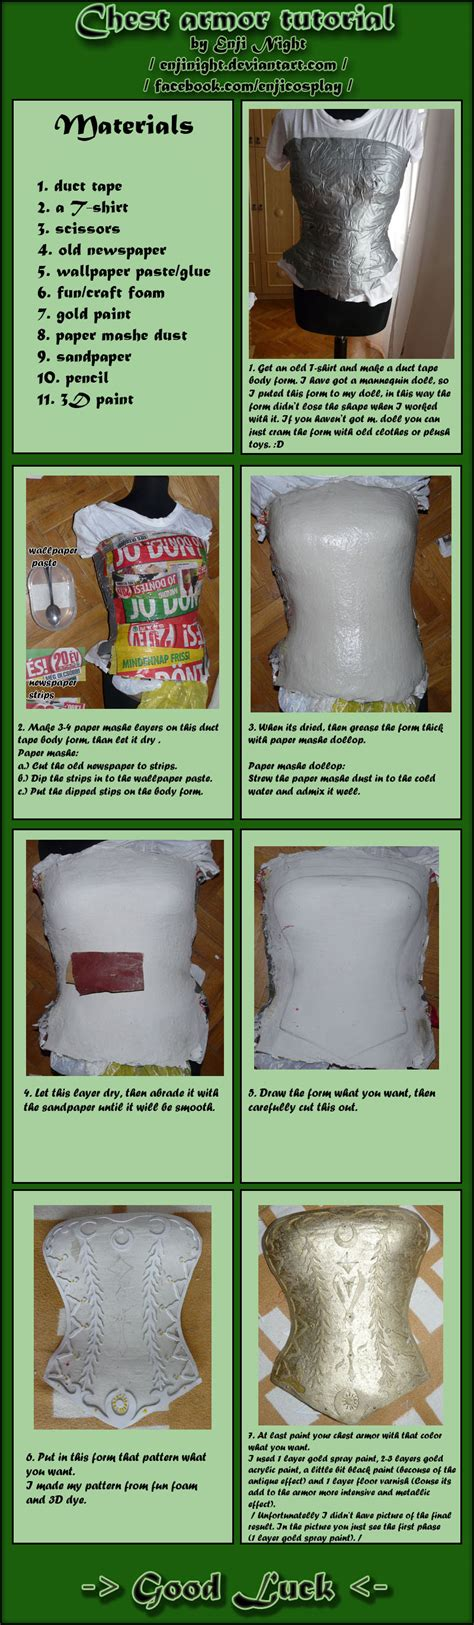 How To Make Paper Mache Armor - chest armor tutorial by enjinight on deviantart